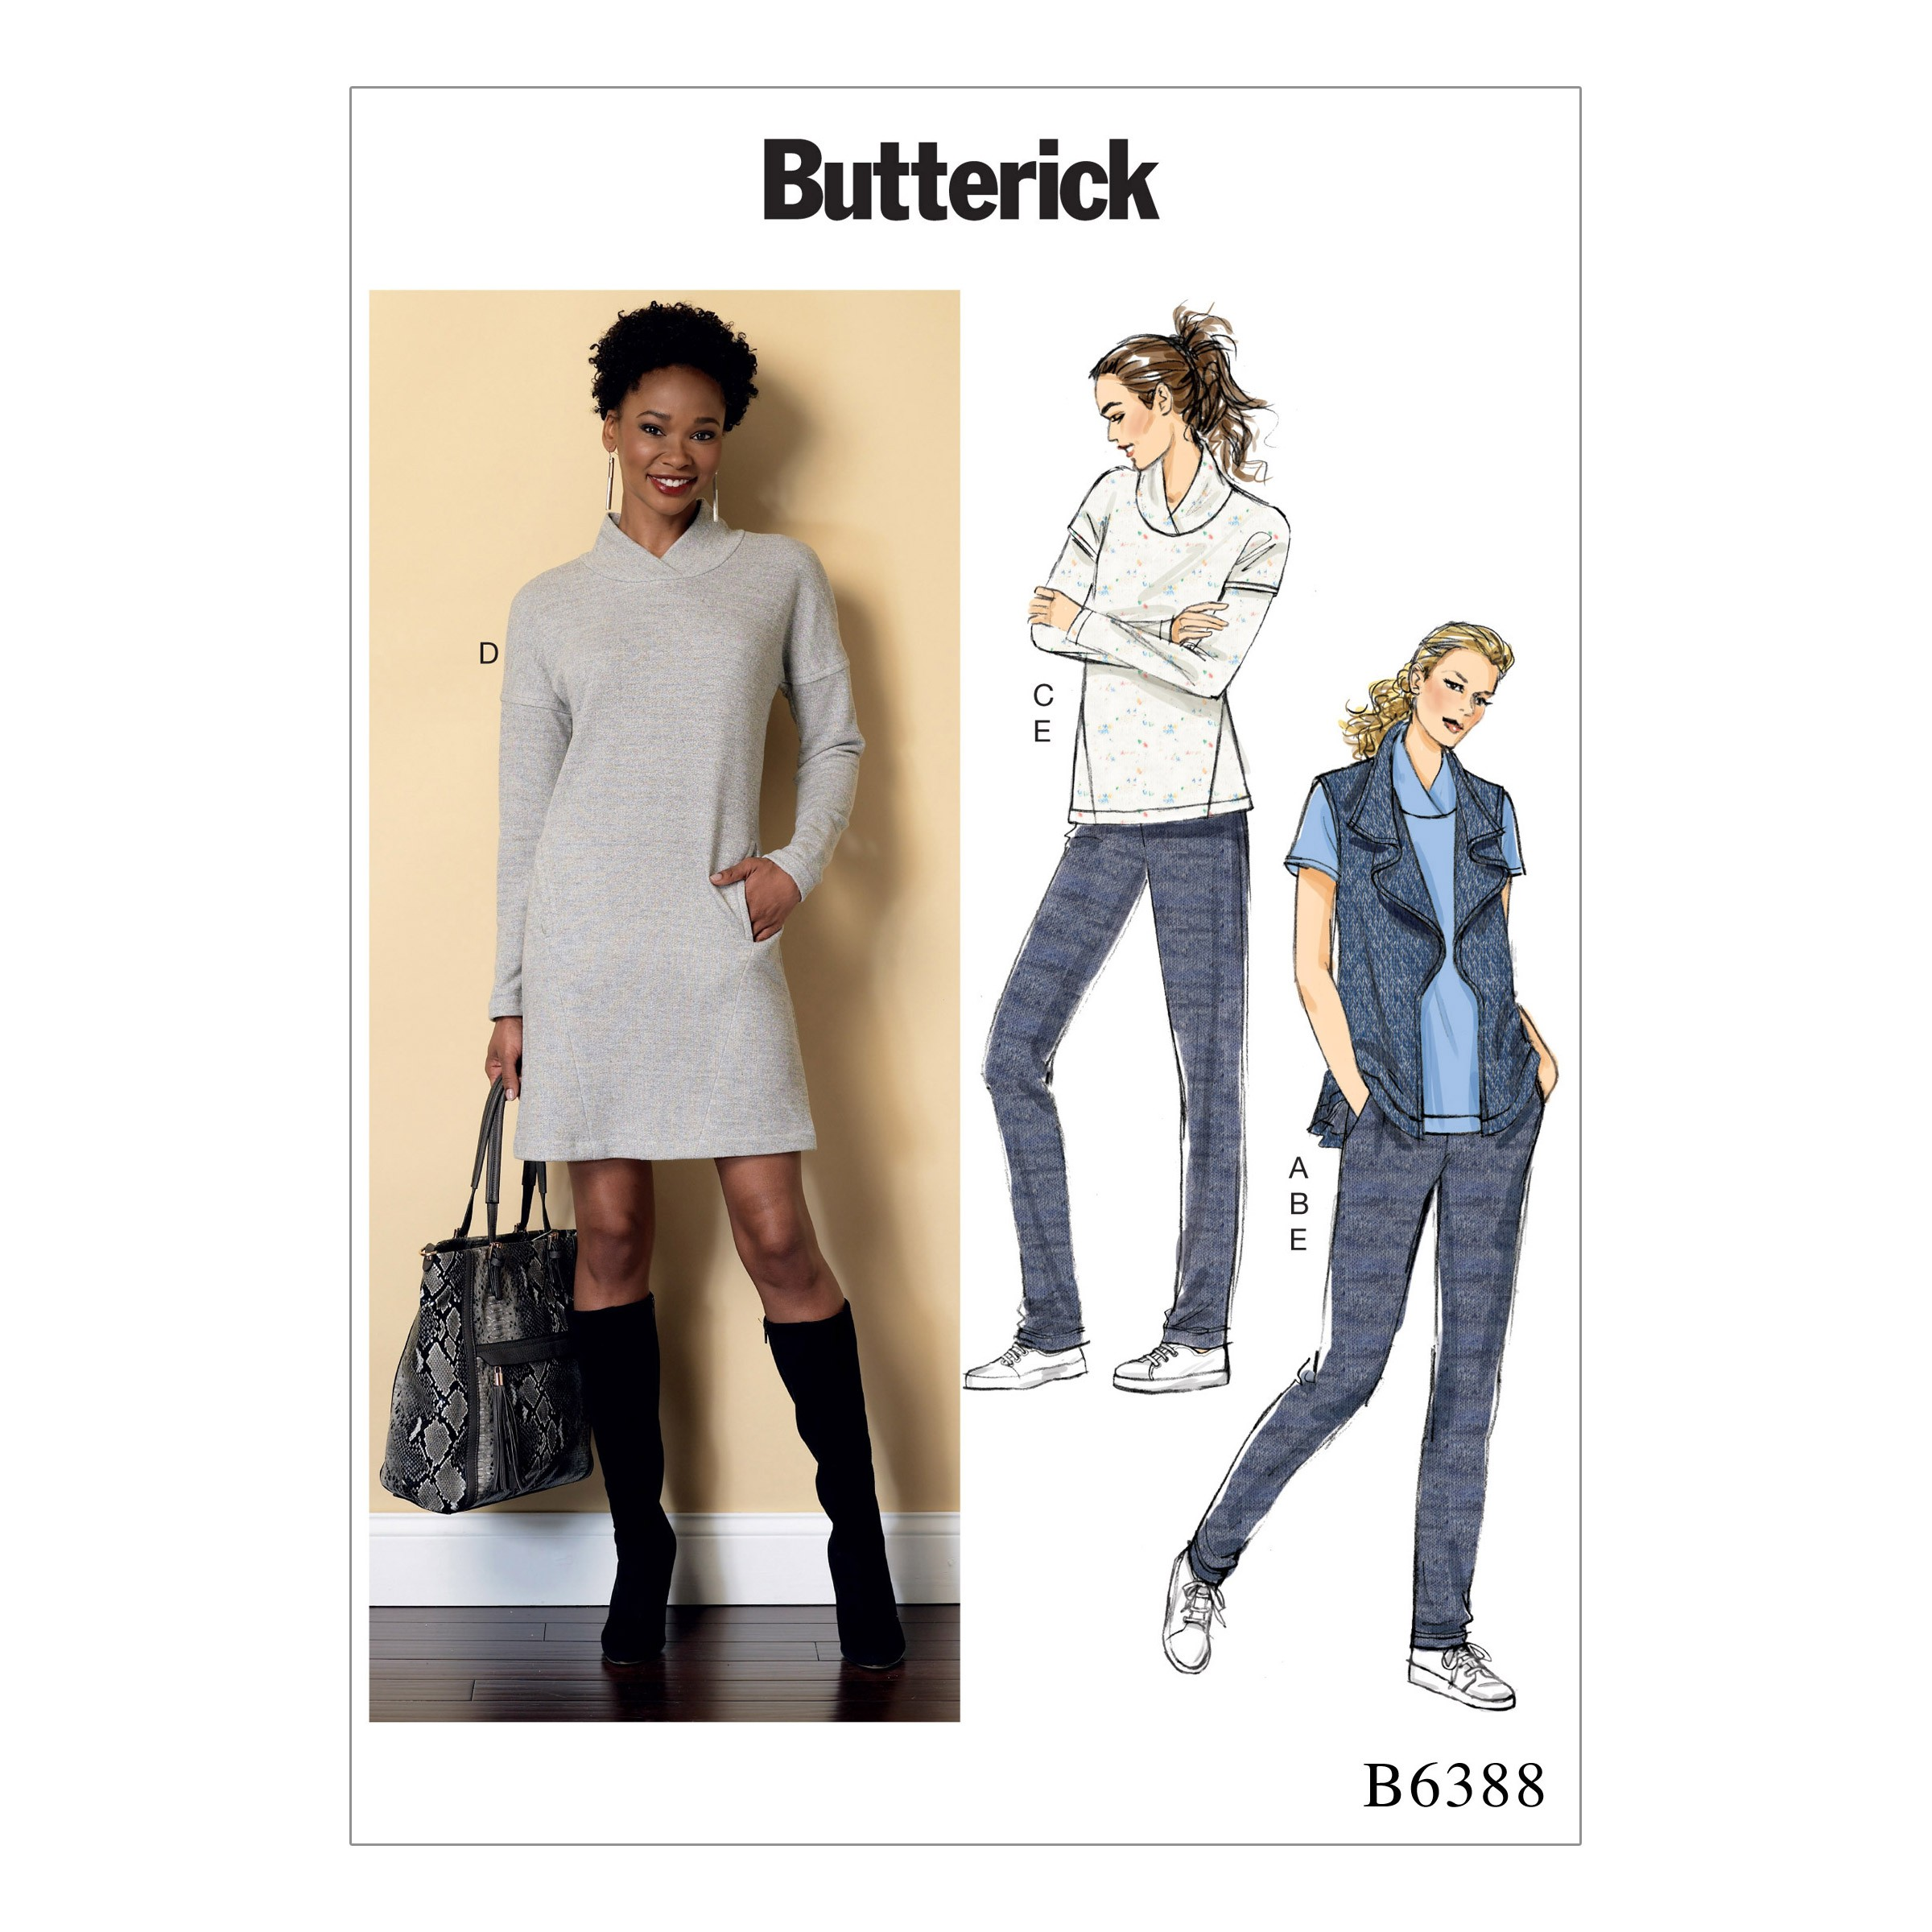 Butterick Sewing Pattern 6388 Misses' Lapped Collar Top Dress & Pleated Trousers